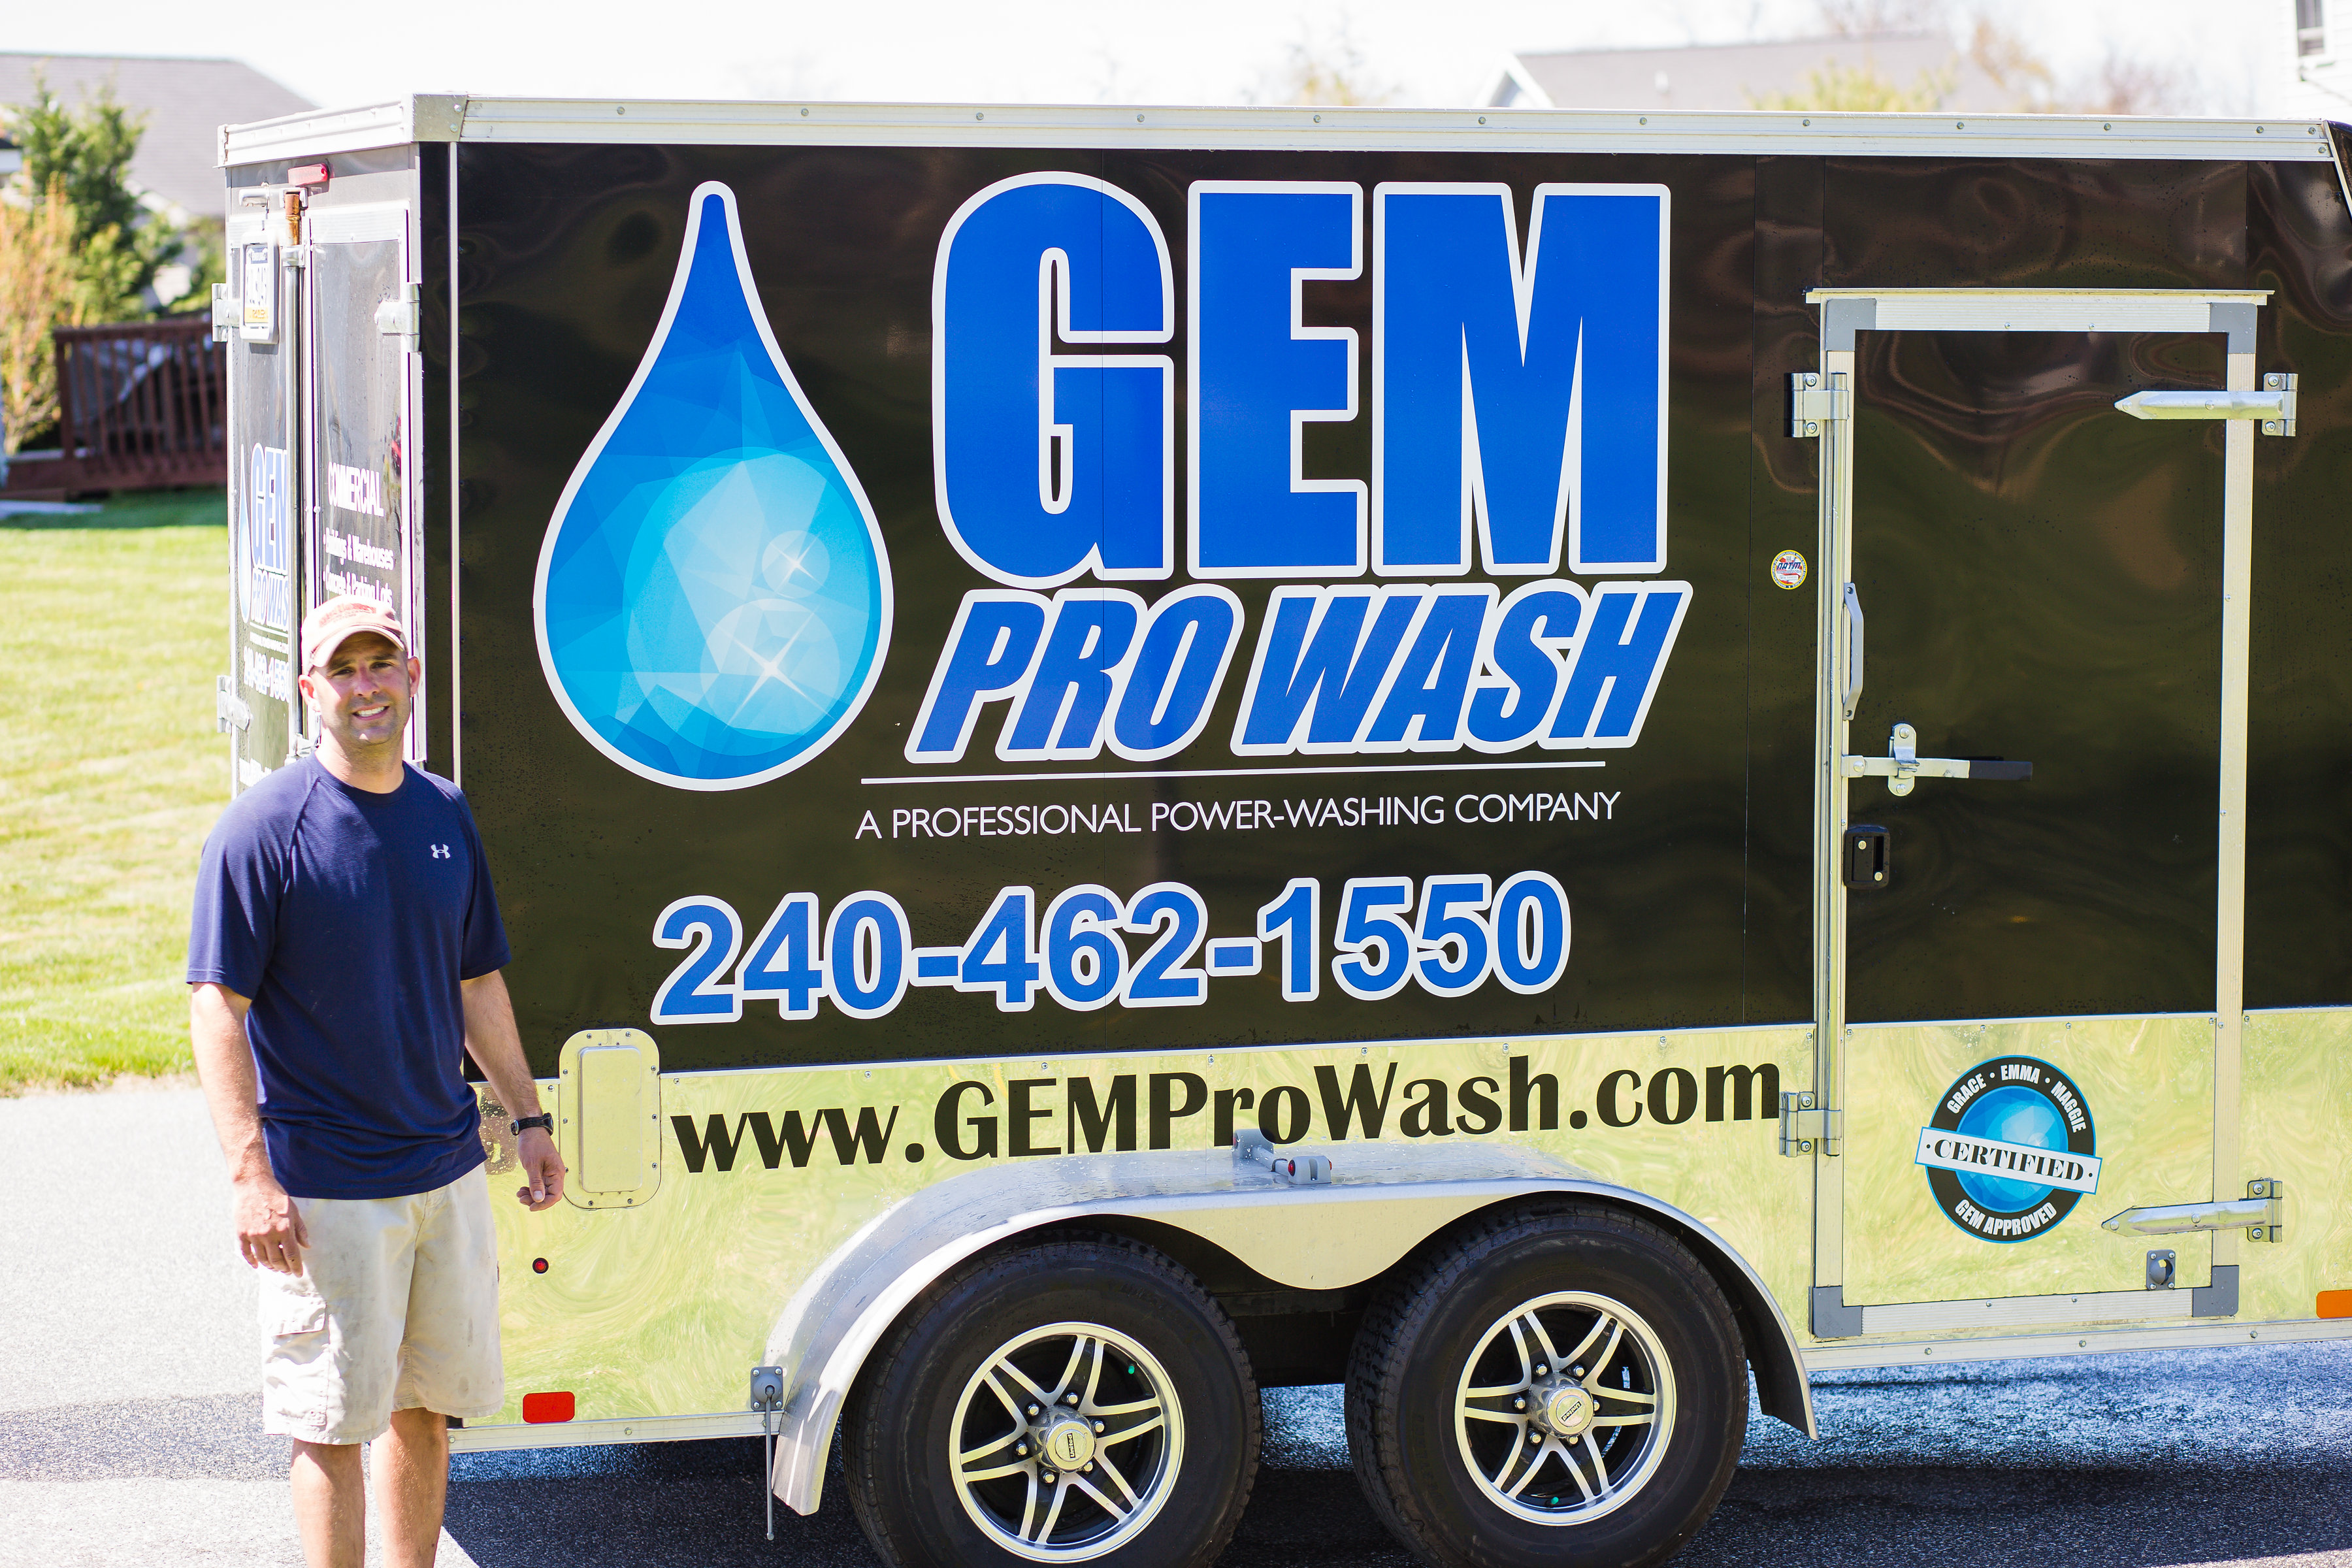 Gem Pro Wash | Sidewalk Cleaning Service in Greencastle PA